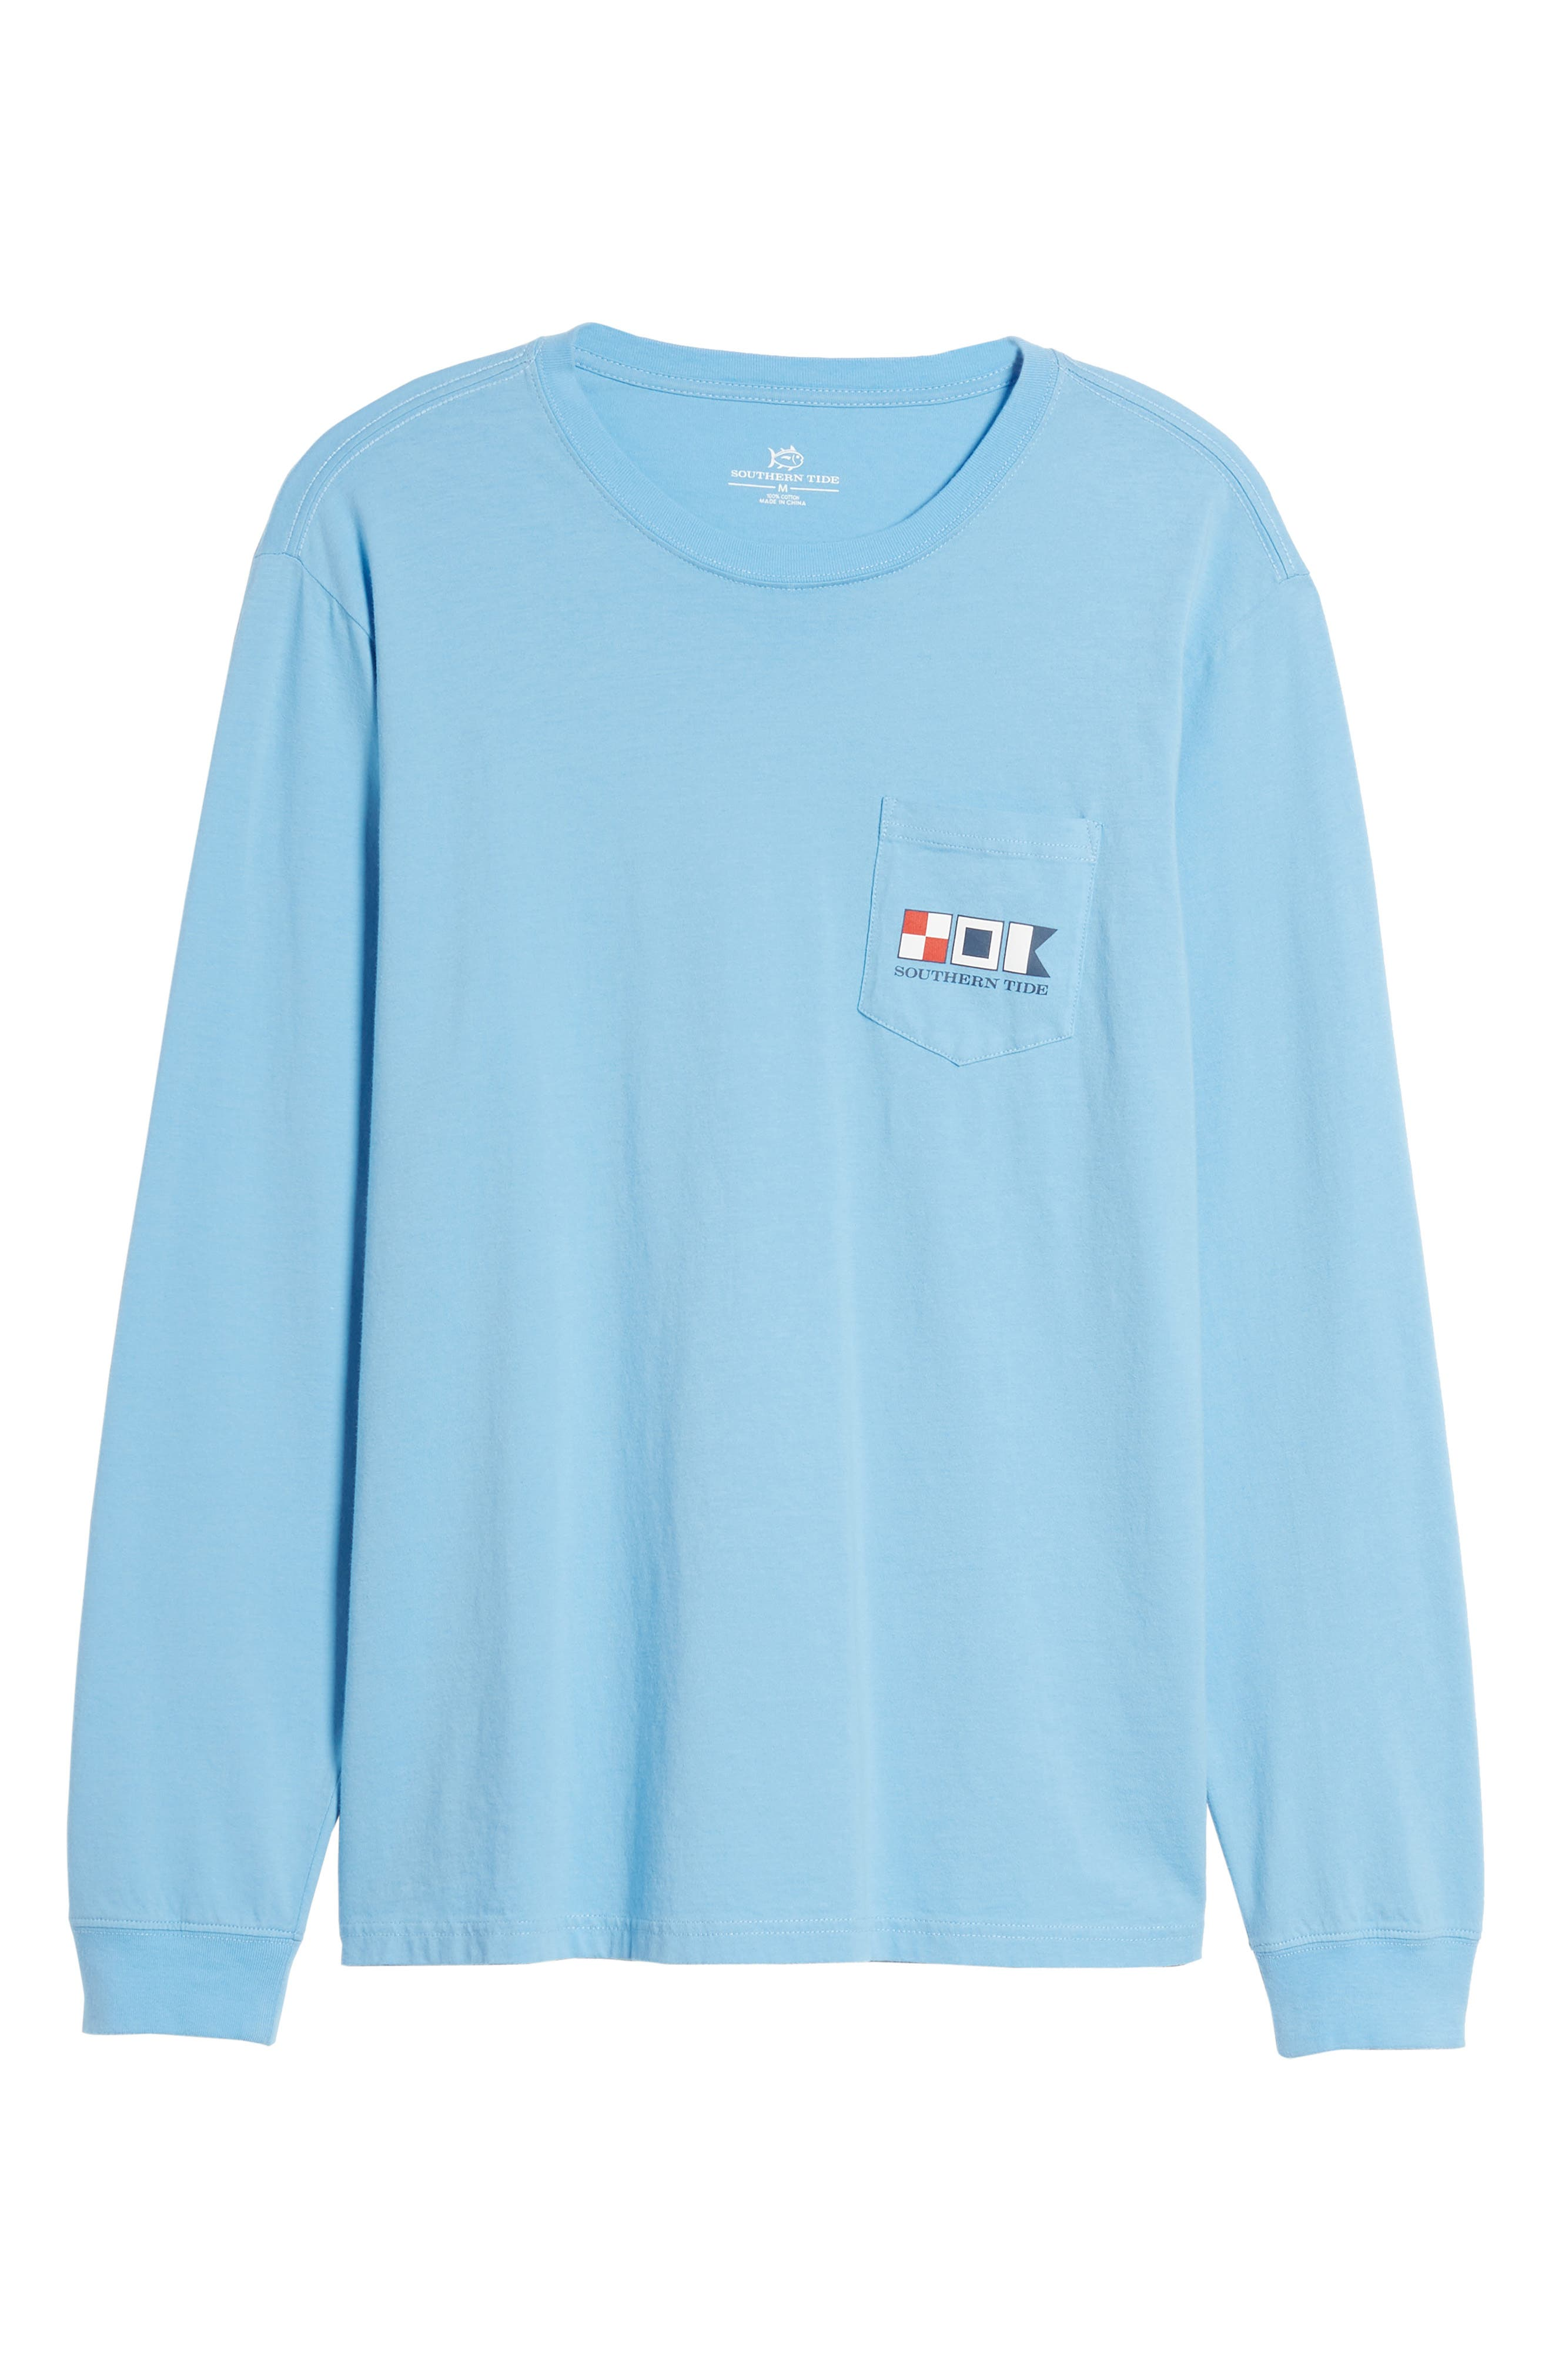 We the People Regular Fit Long Sleeve T-Shirt,                             Alternate thumbnail 6, color,                             392